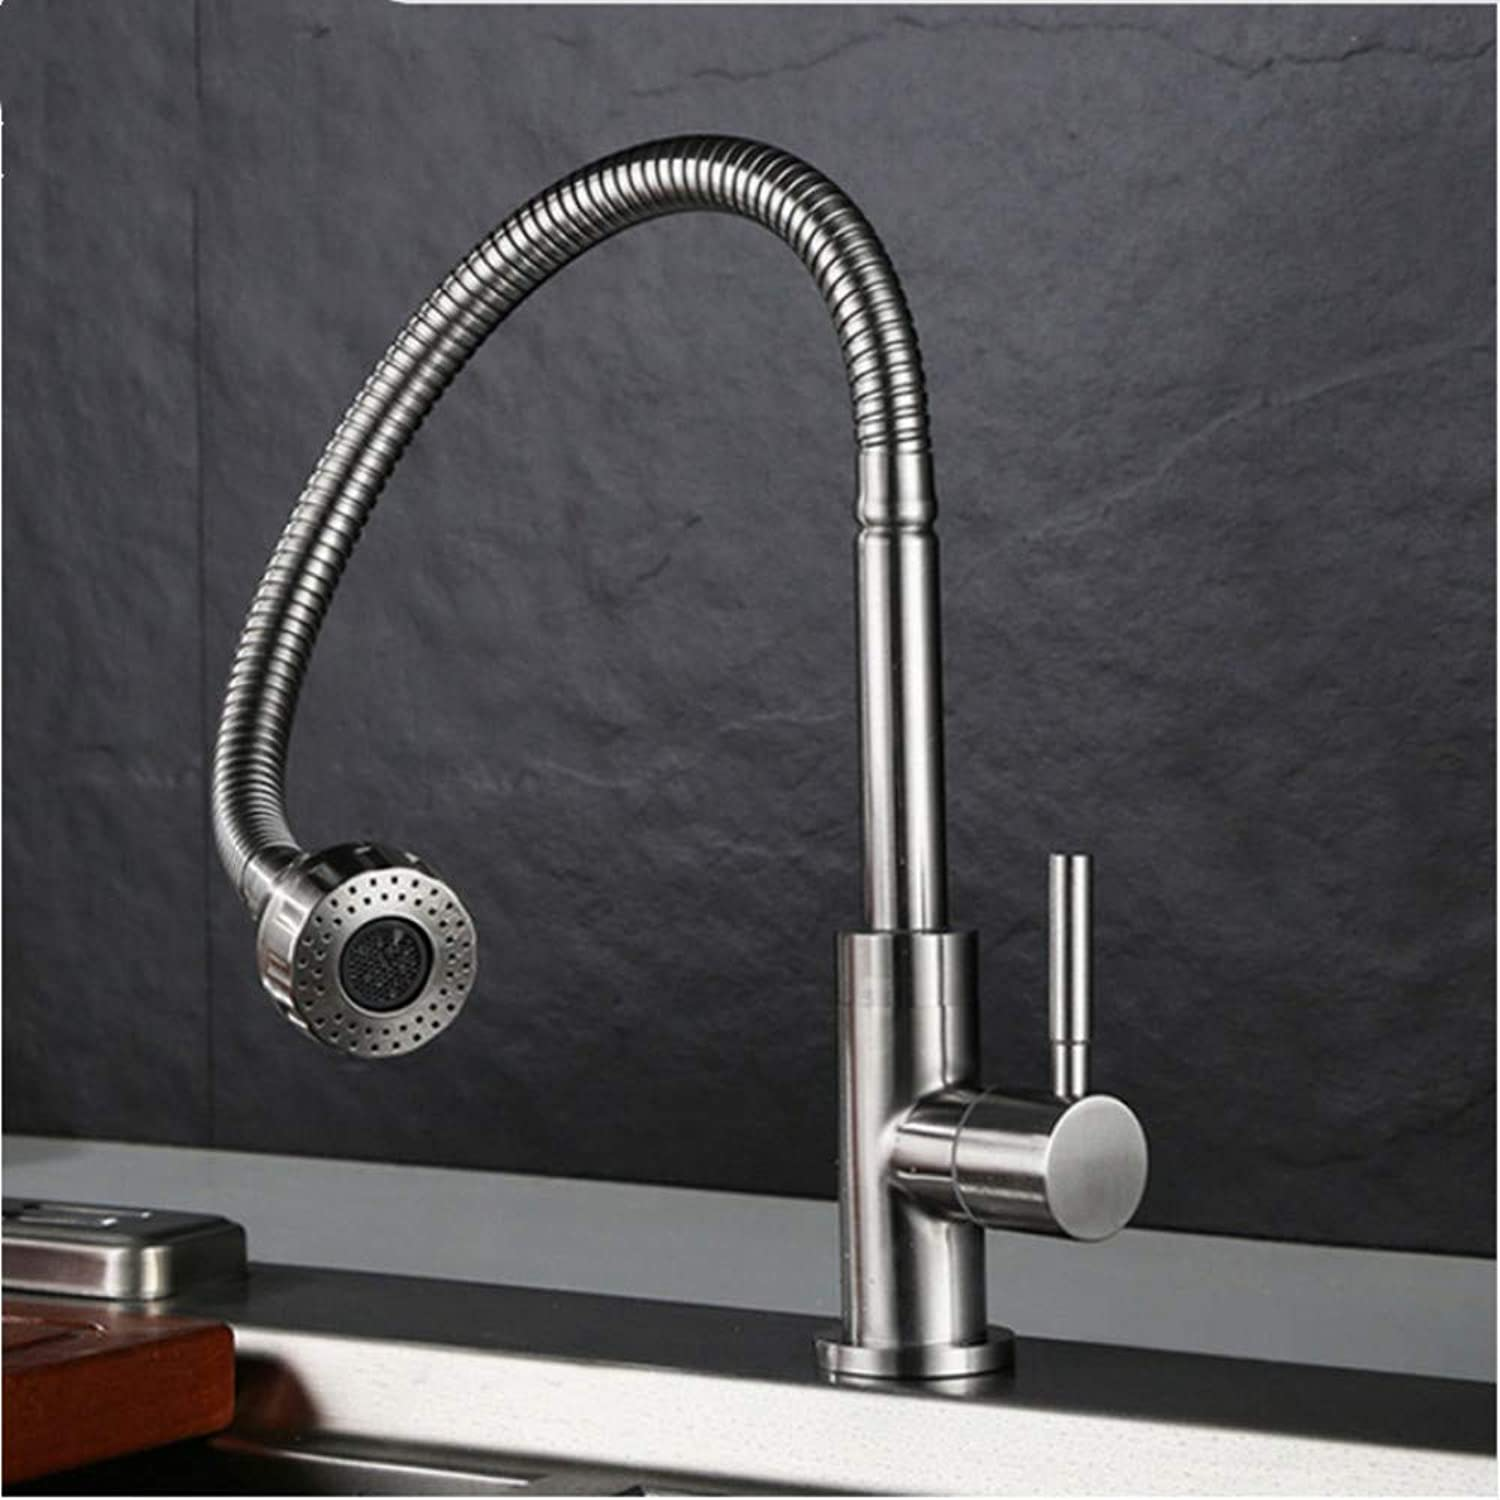 LLLYZZ 304 Stainless Steel Brushed Single Cold Water Kitchen Faucet Water-Saving 2-Function Water Outlet